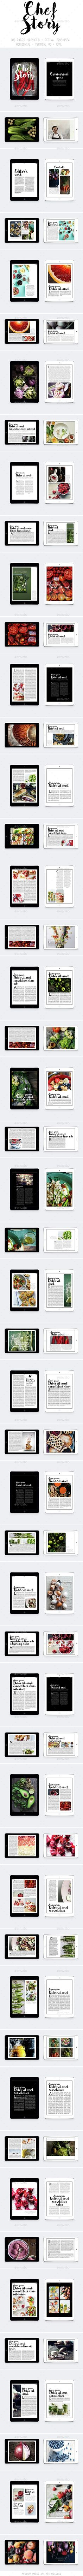 Tablet & Ipad Chef Story Magazine Template InDesign INDD. Download here: http://graphicriver.net/item/tablet-ipad-chef-story-magazine/14891878?ref=ksioks